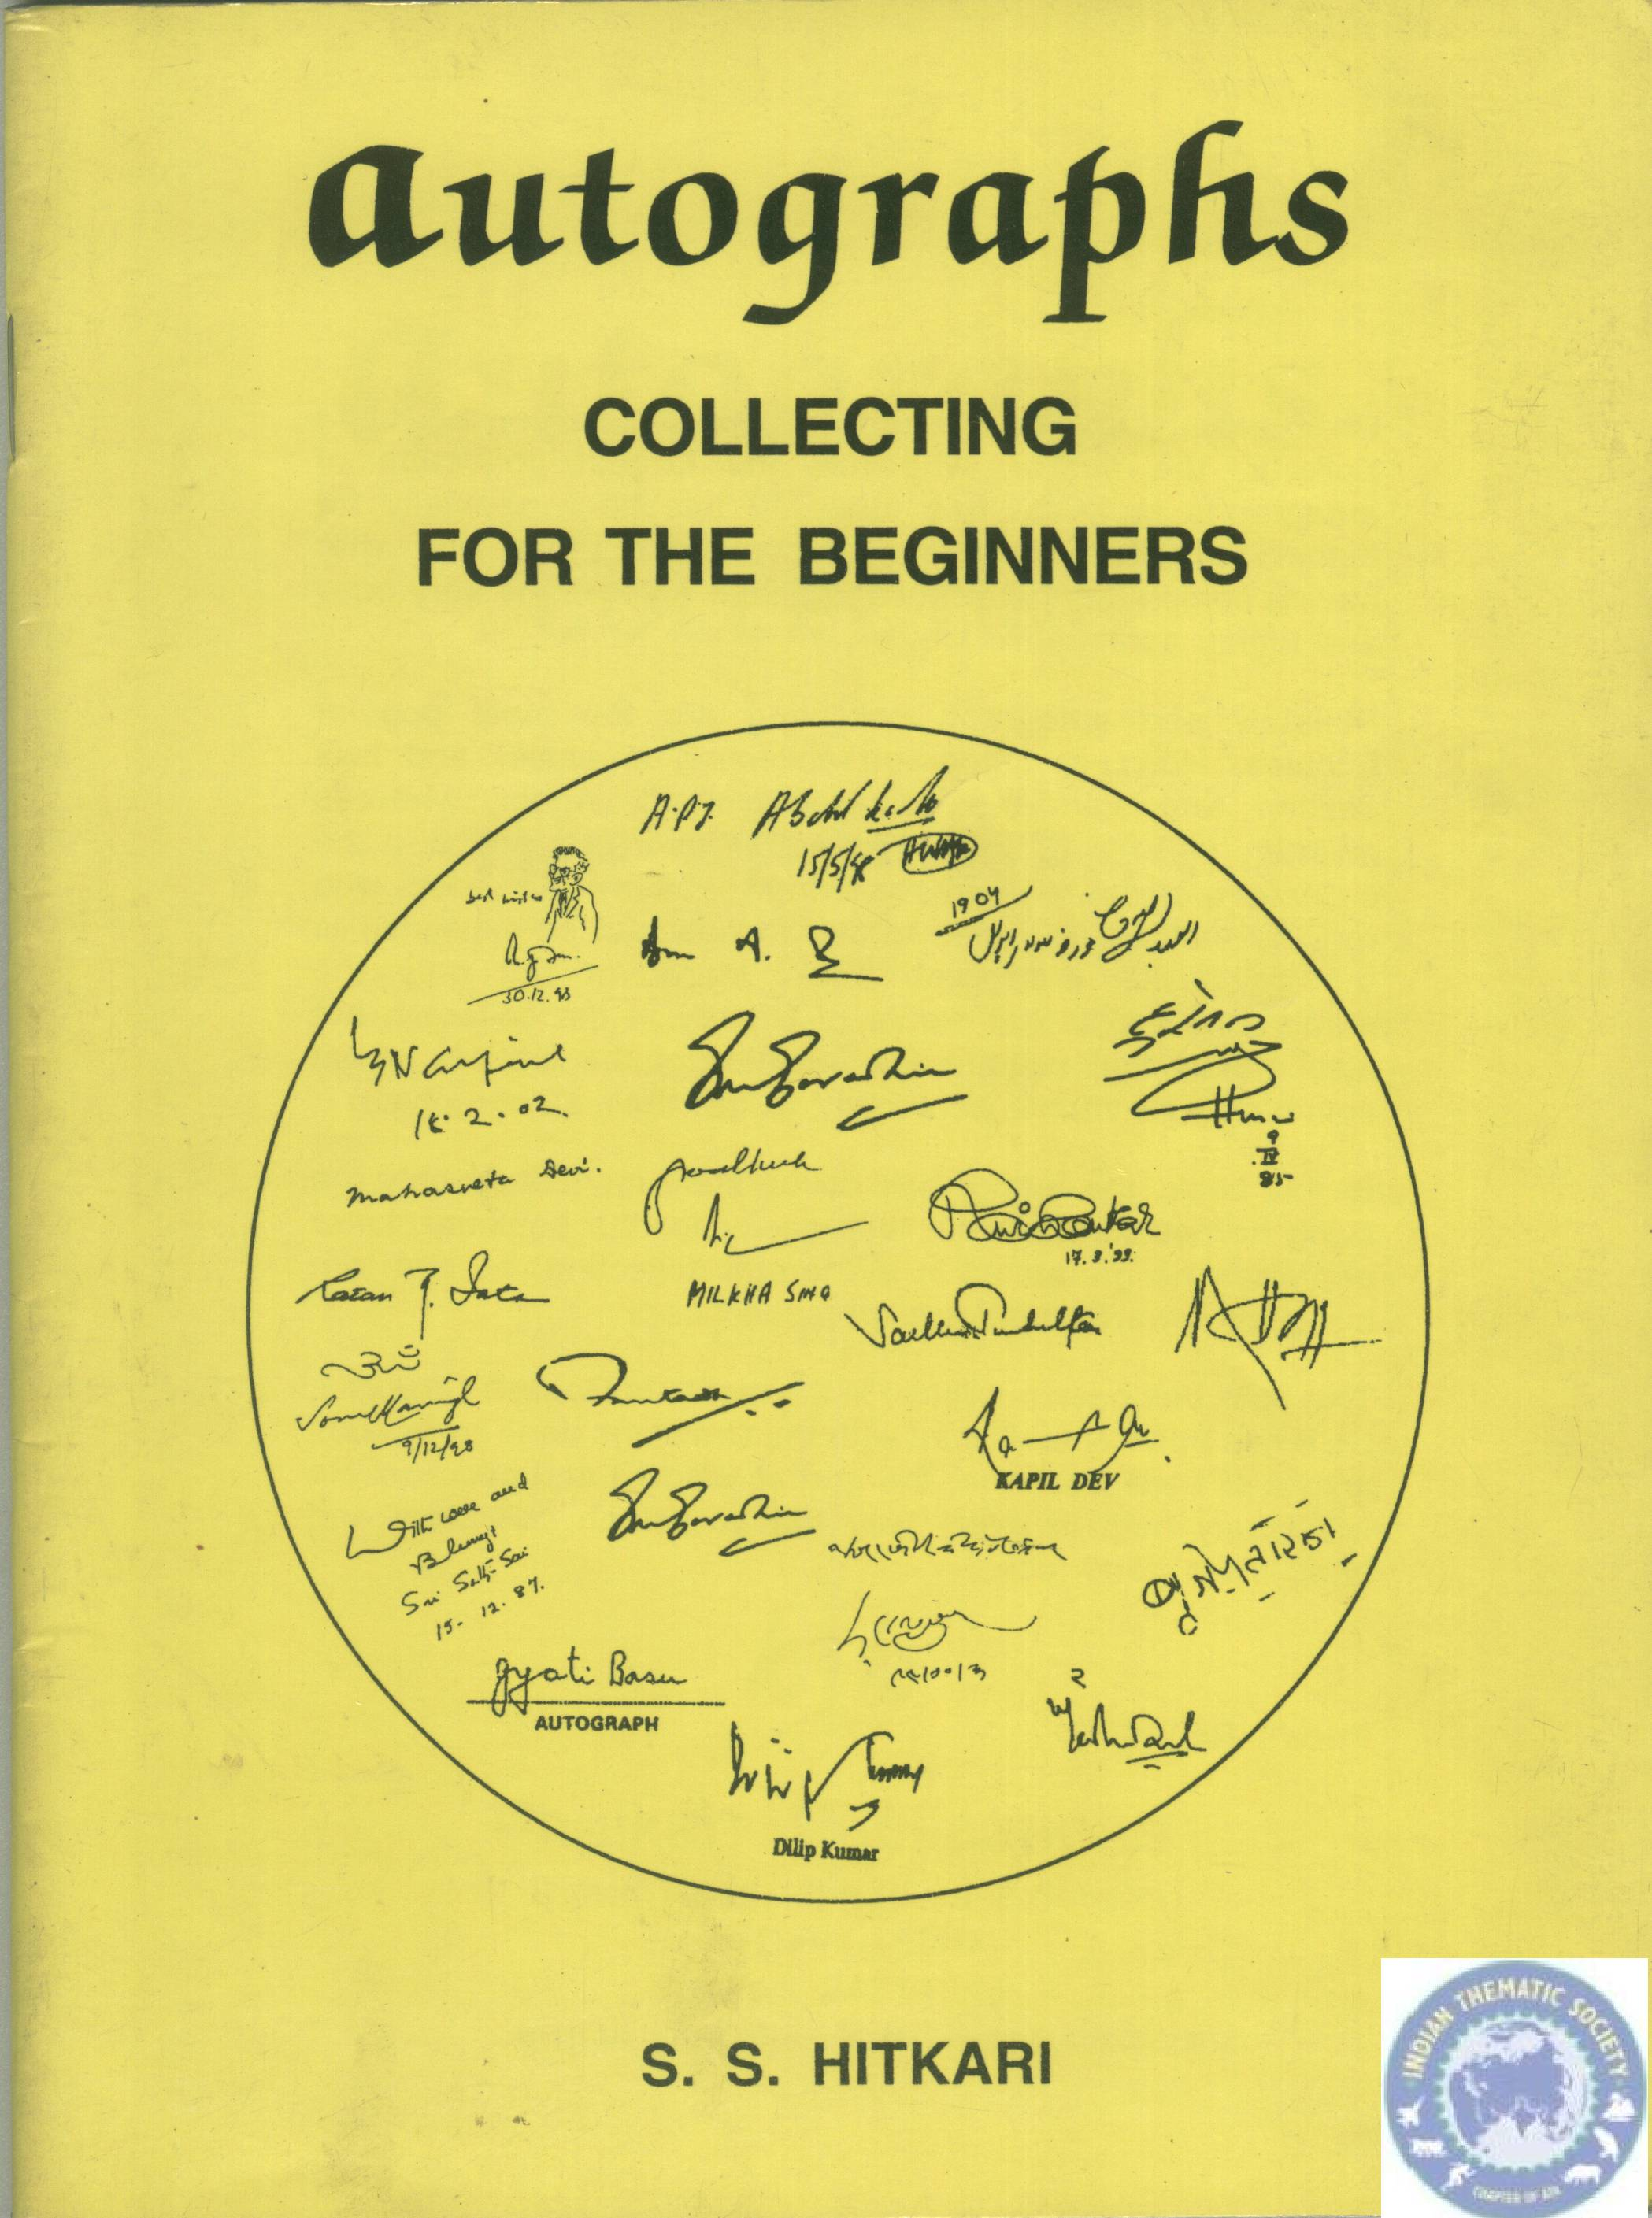 Autographs Collecting for beginners